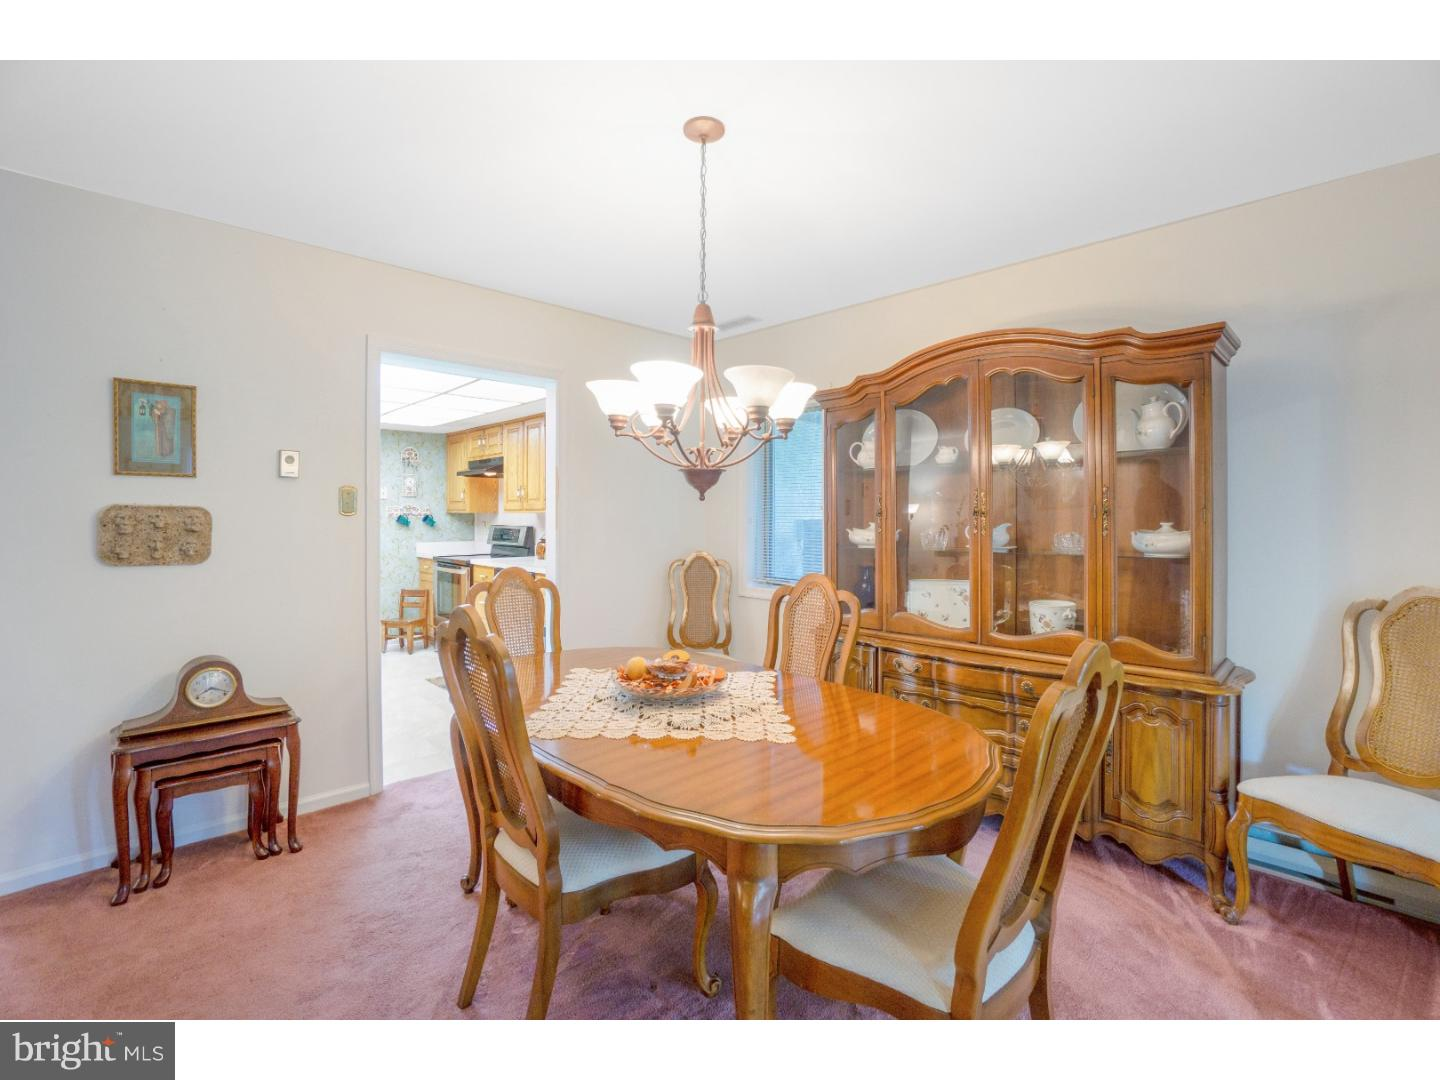 935 Jefferson Way West Chester , PA 19380